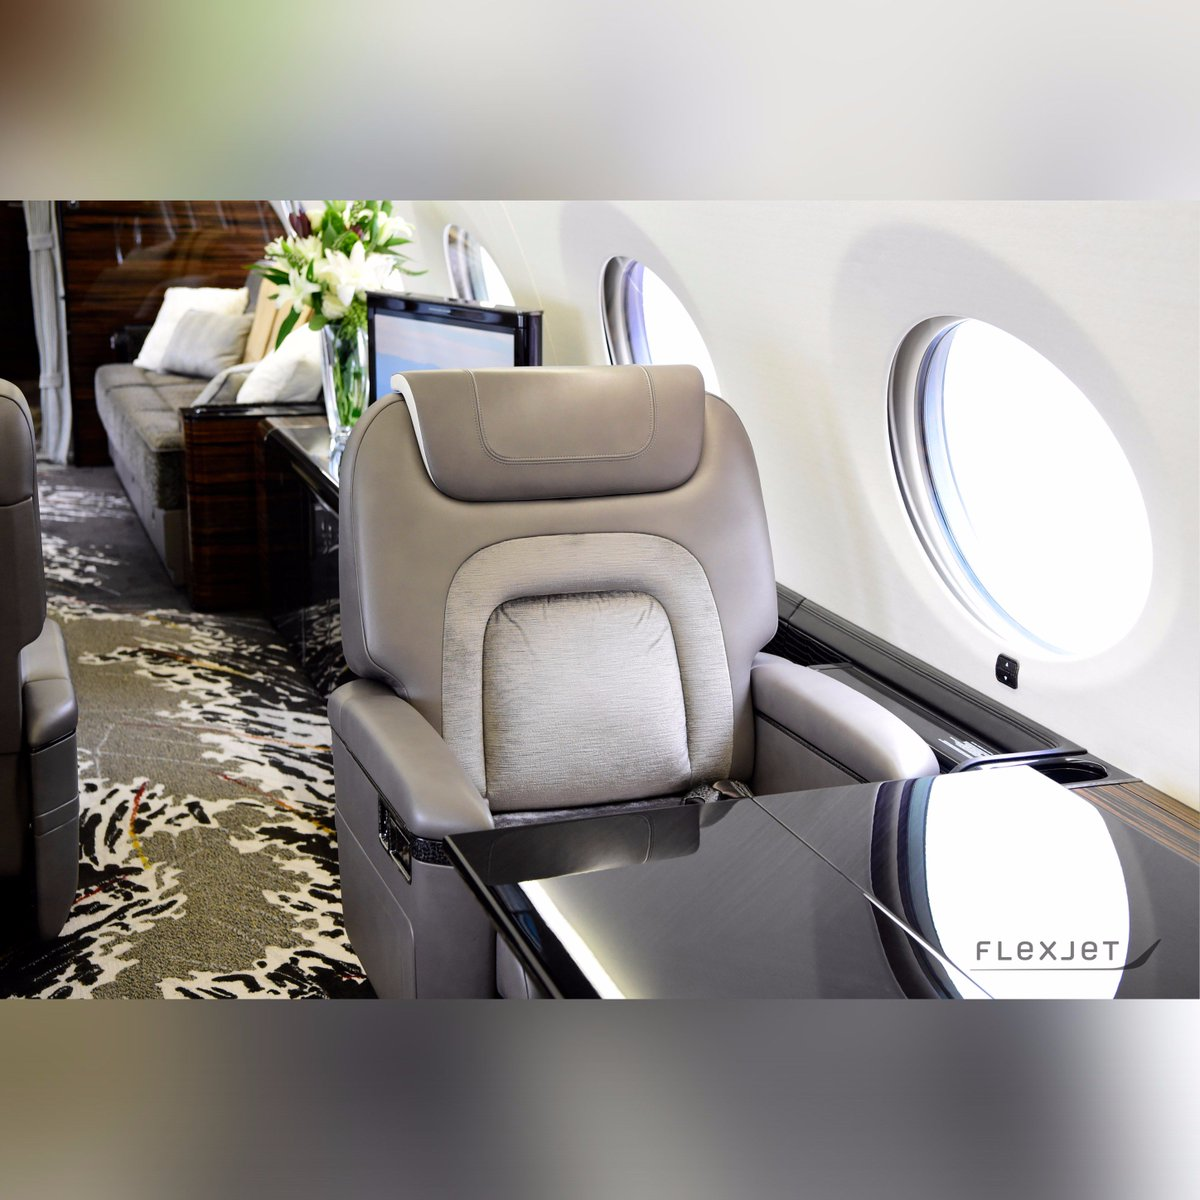 With 16 oversized oval windows, Flexjet&#39;s new #Gulfstream #G650 cabin is flooded with natural light.  http:// ow.ly/Z72930fpe0f  &nbsp;  <br>http://pic.twitter.com/65sZaGhoWa